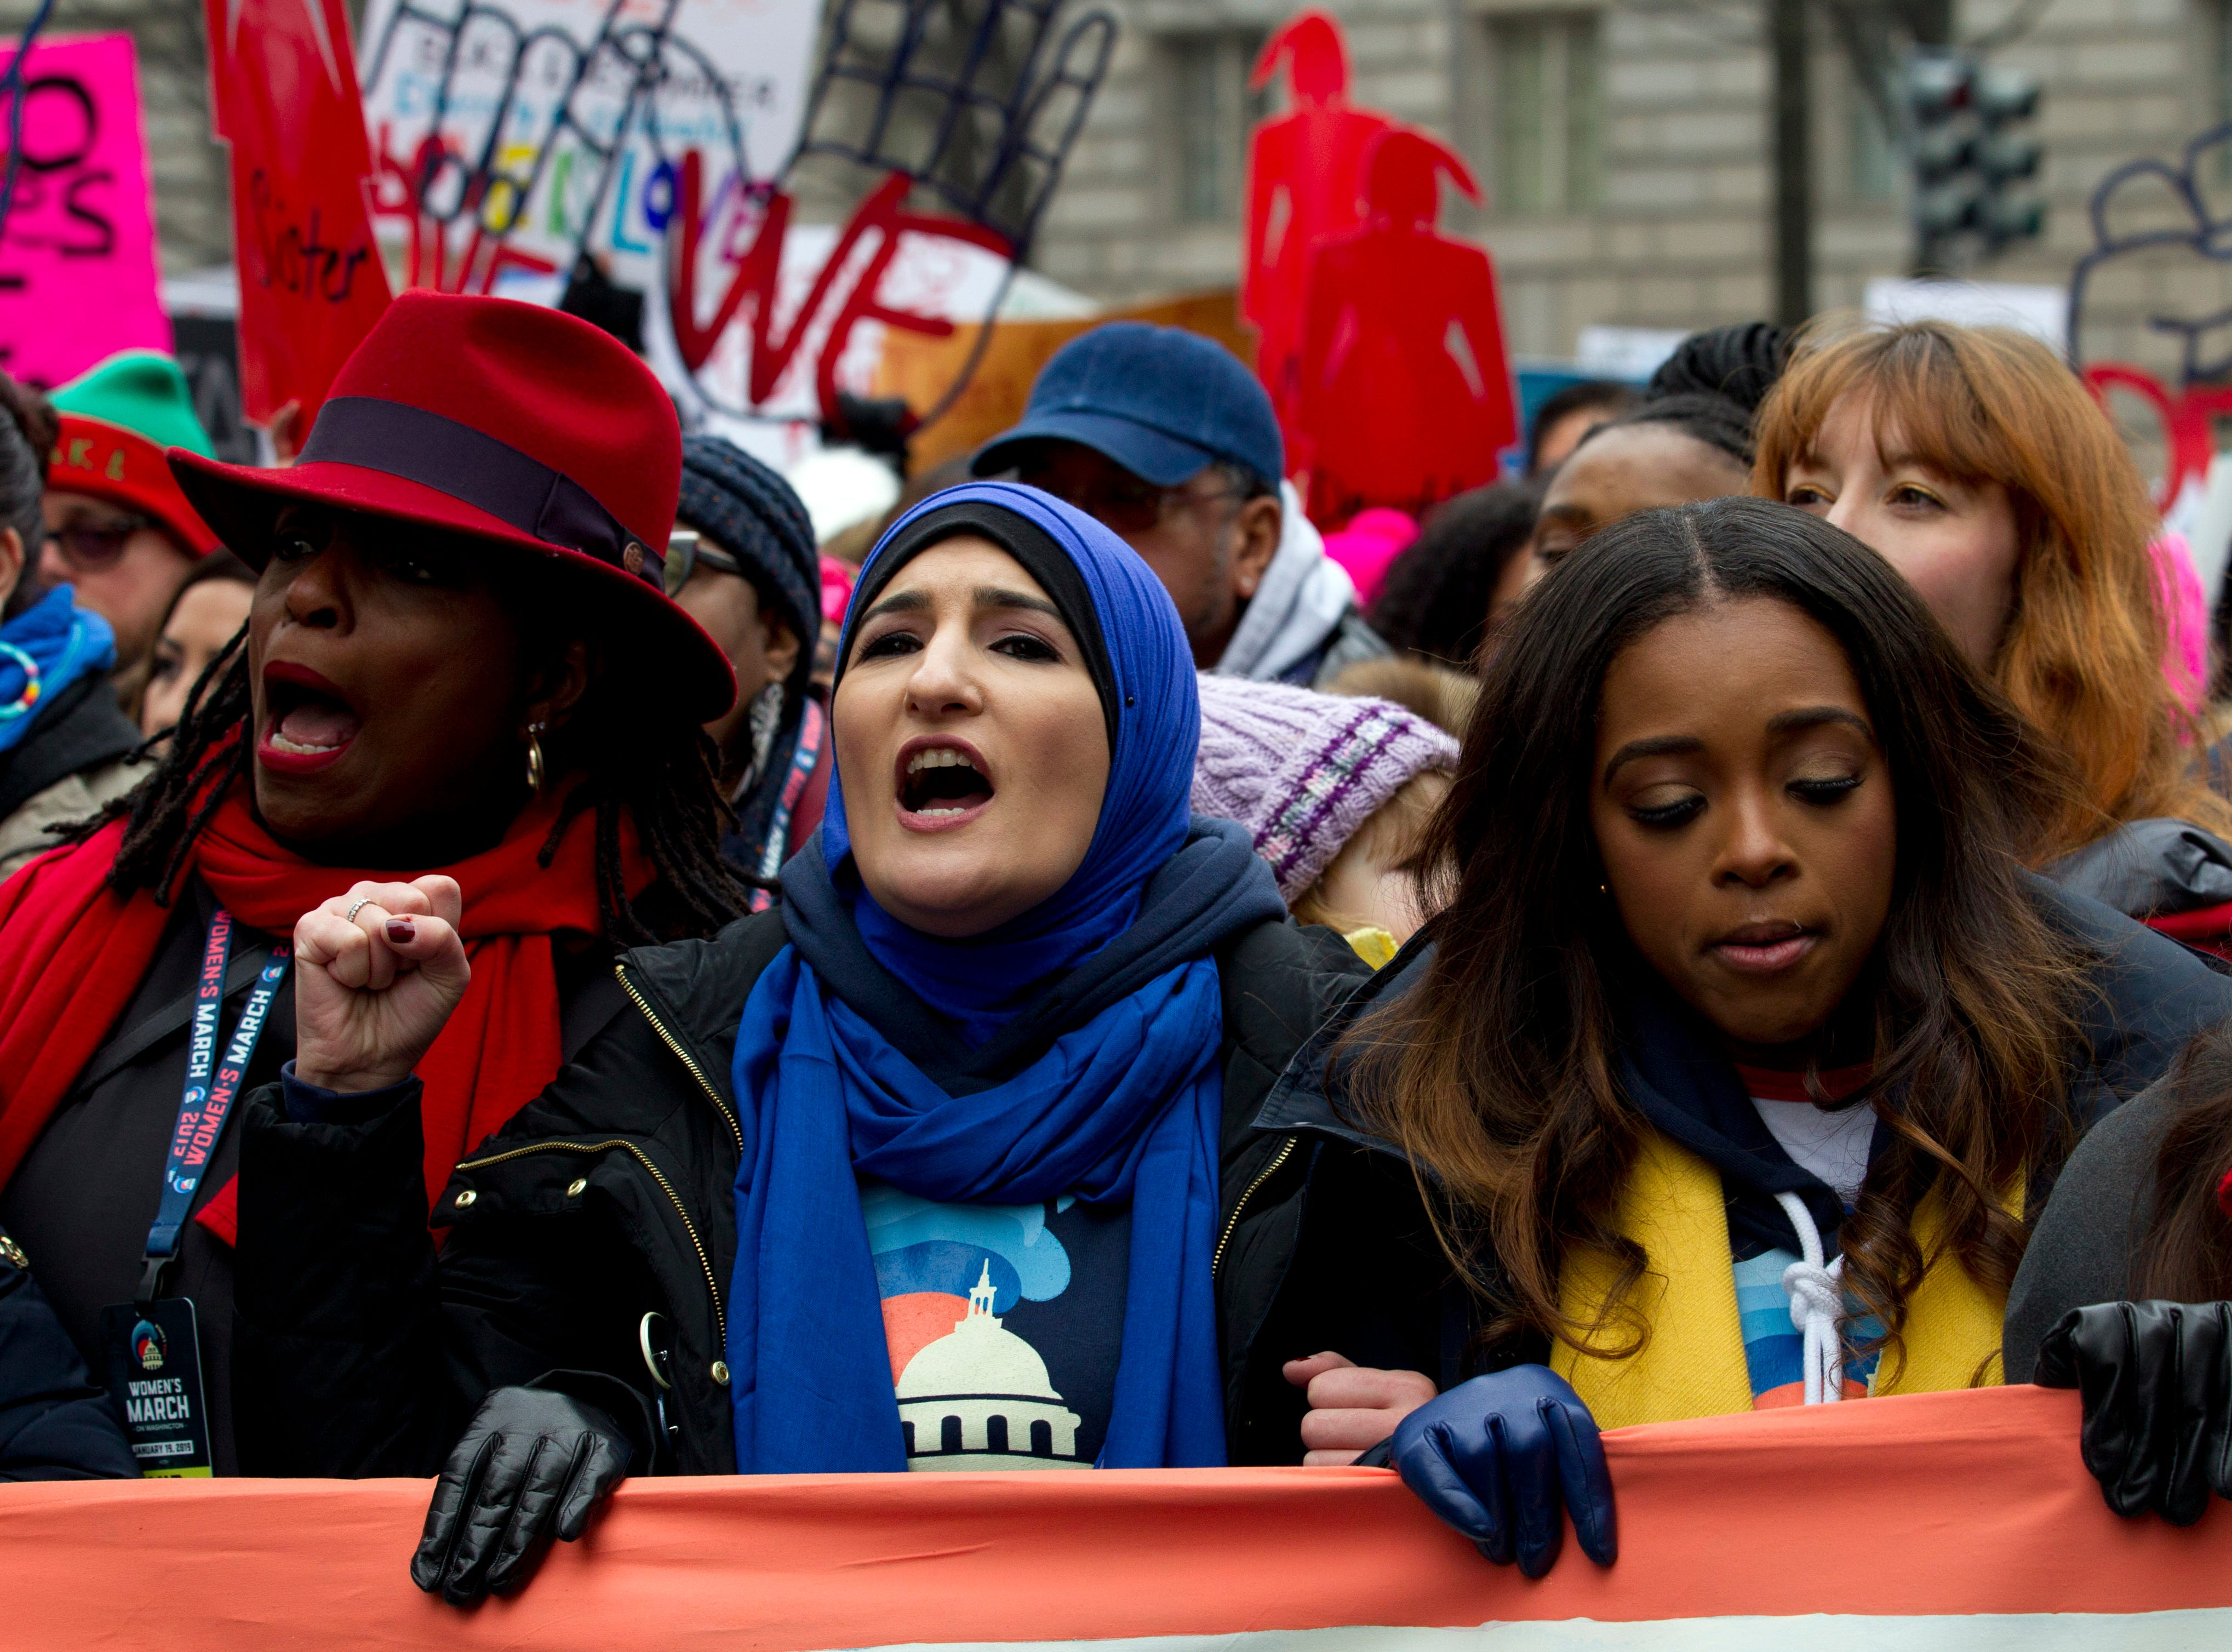 Co-presidents of the 2019 Women's March, Linda Sarsour, center, and Tamika Mallory, right, join other demonstrators on Pennsylvania Avenue during the Women's March in Washington on Saturday, Jan. 19, 2019.